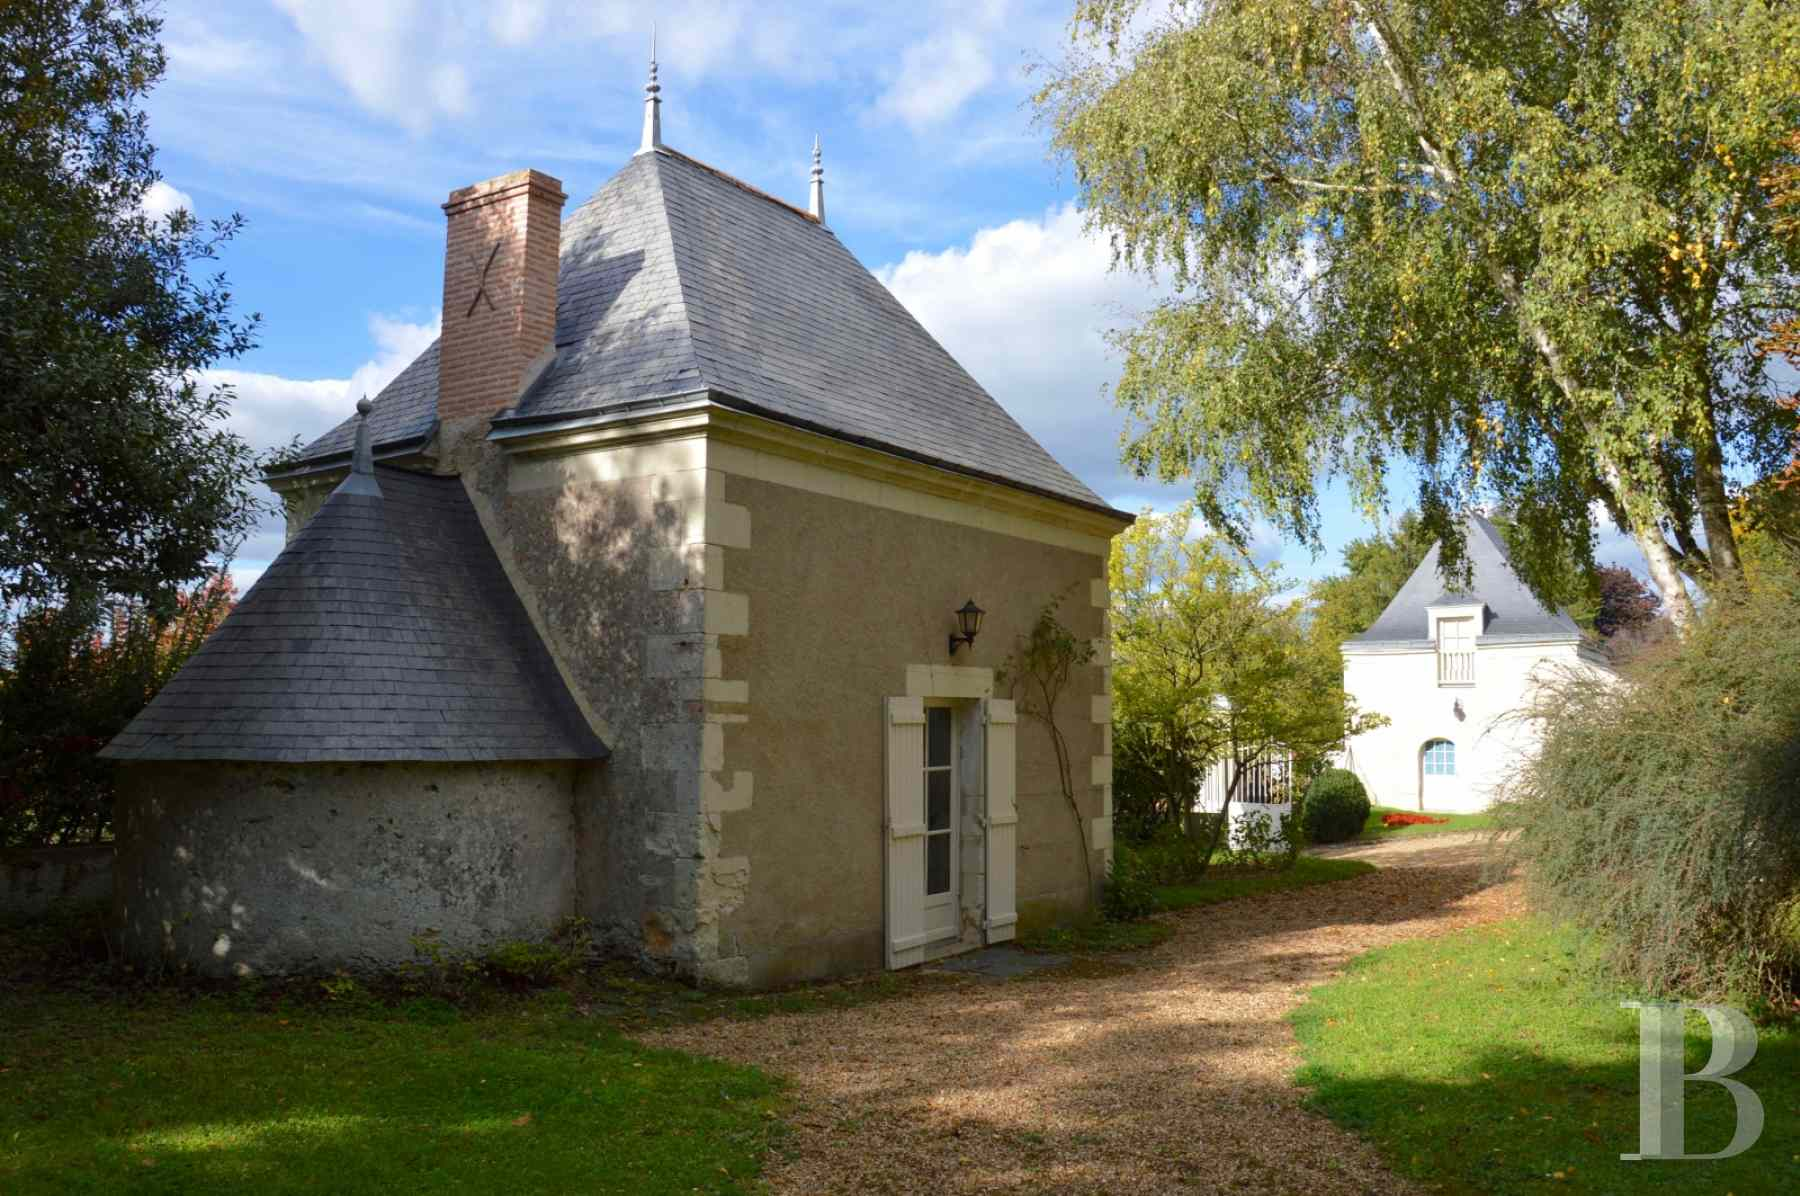 France mansions for sale pays de loire 17th century - 10 zoom